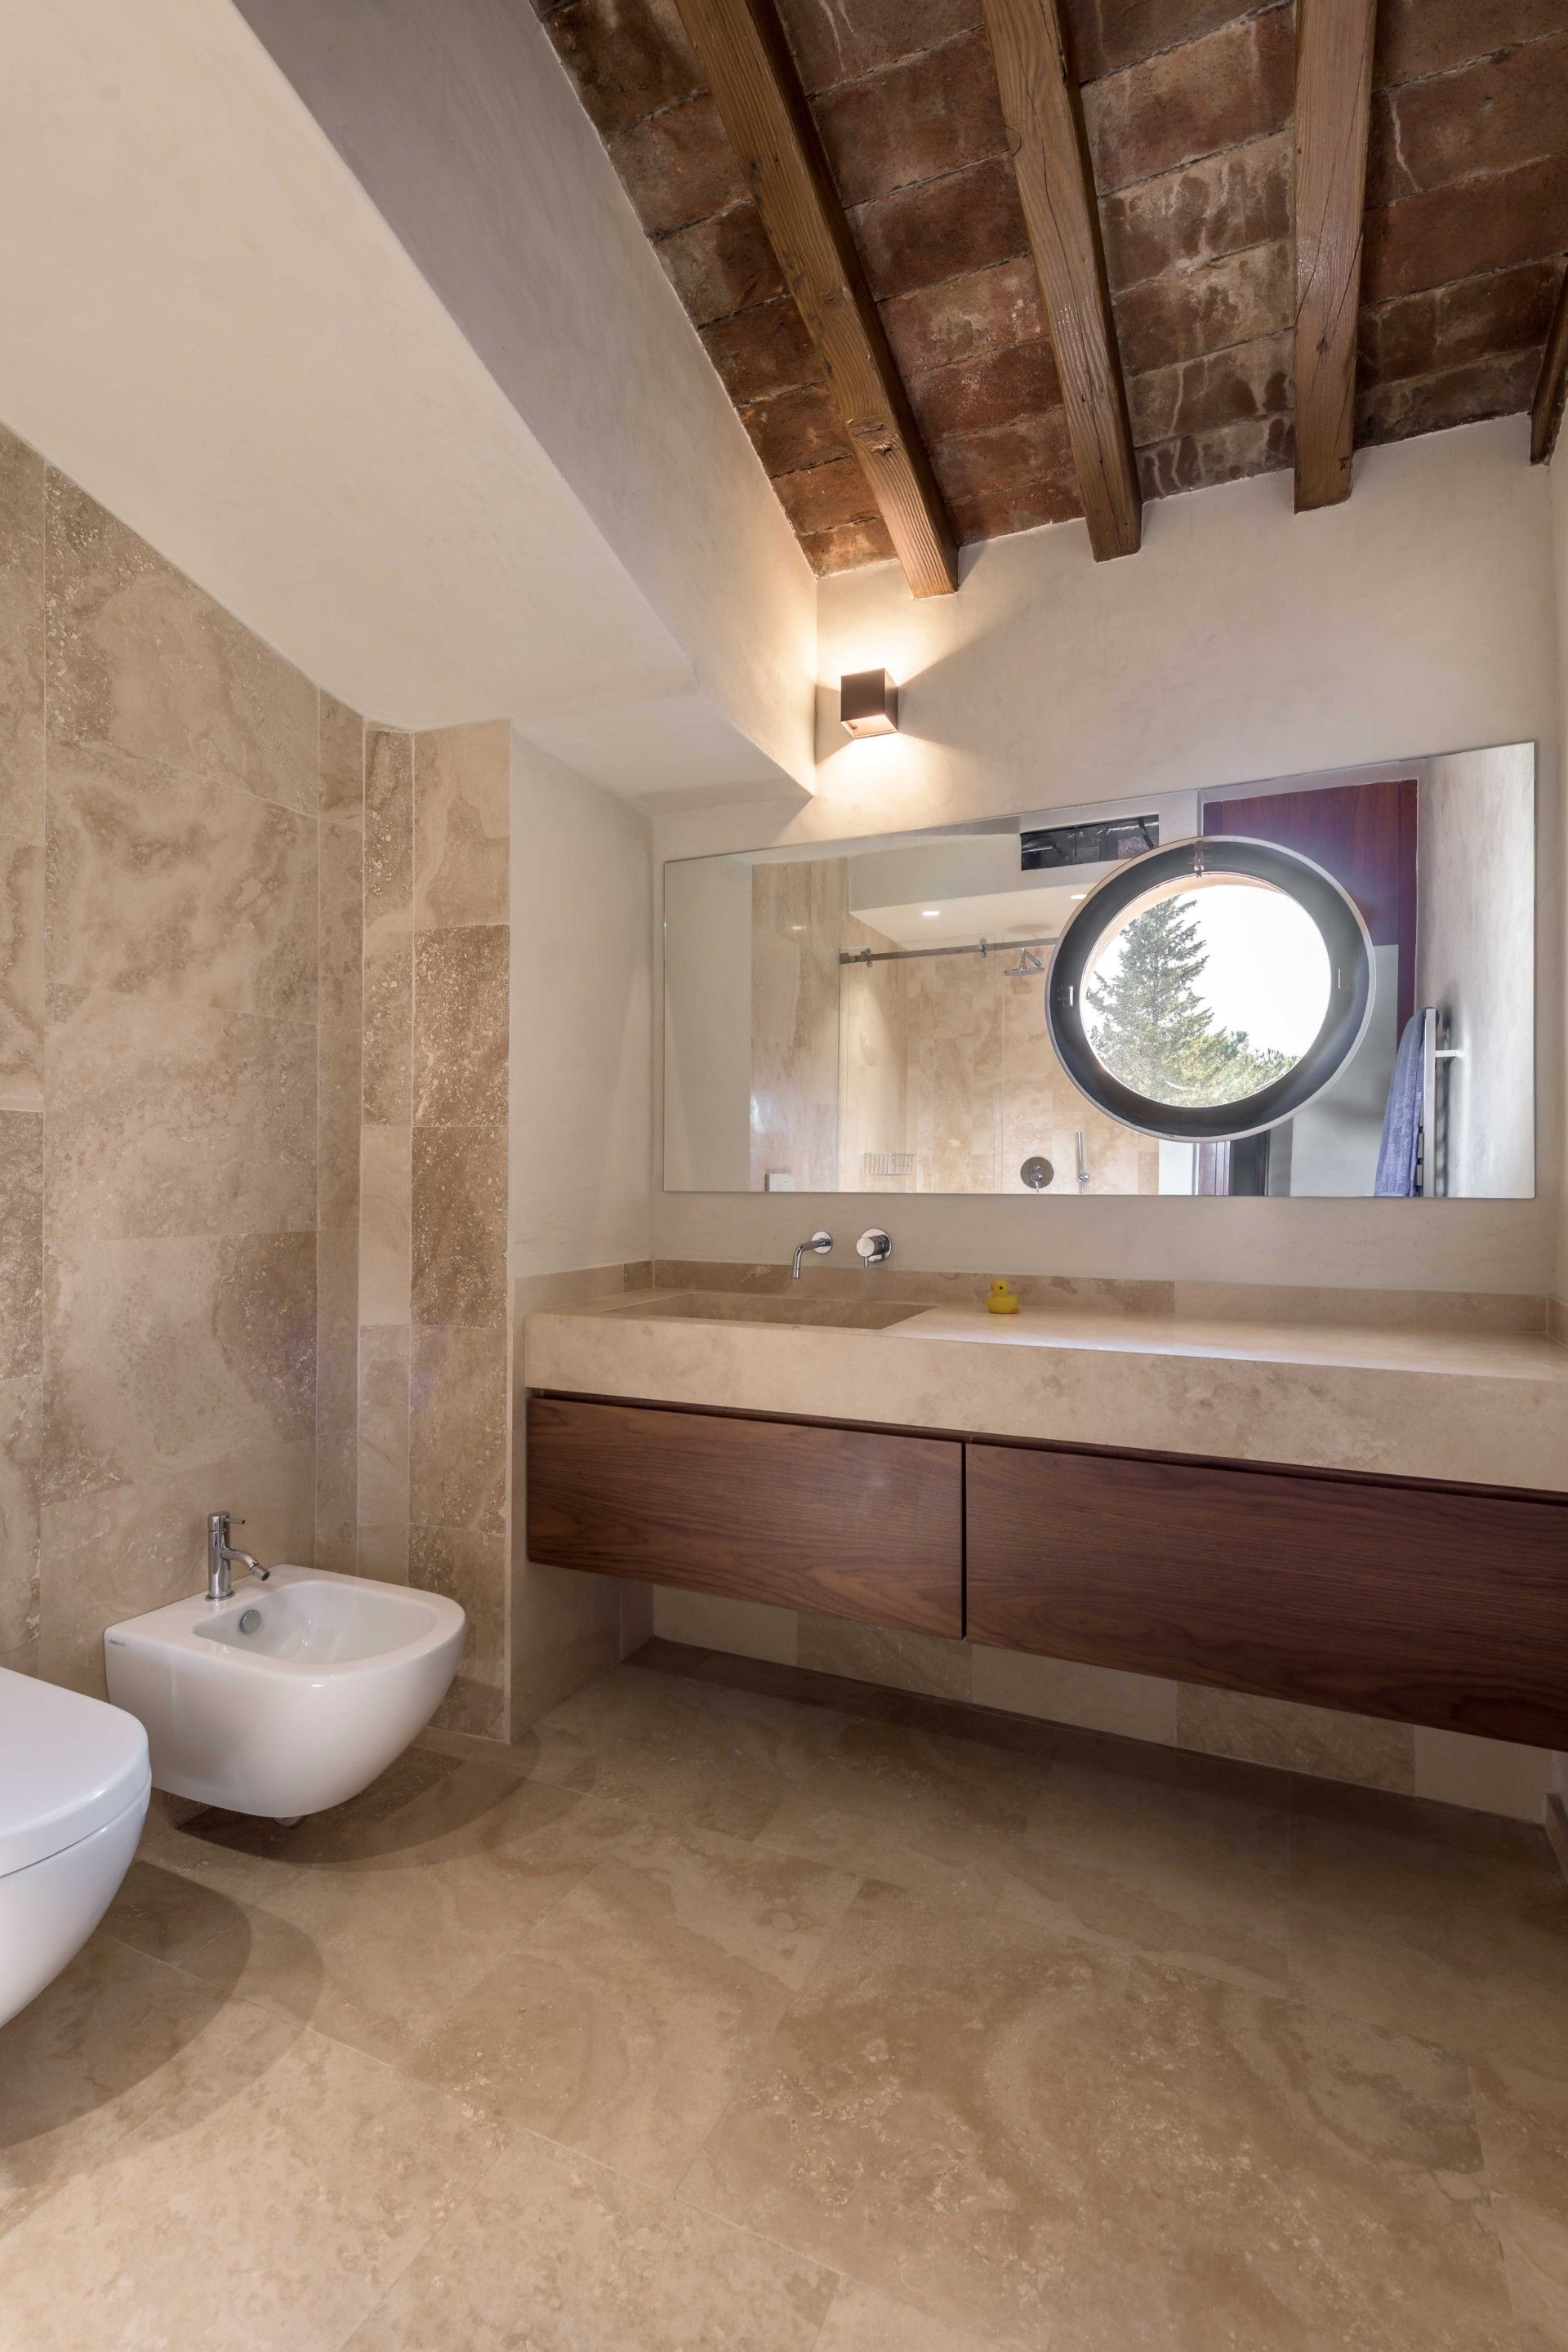 Pierattelli Architetture Designs The Interior Of An Old Tuscany Farmhouse Floornature House Redesign Tuscan House Interior